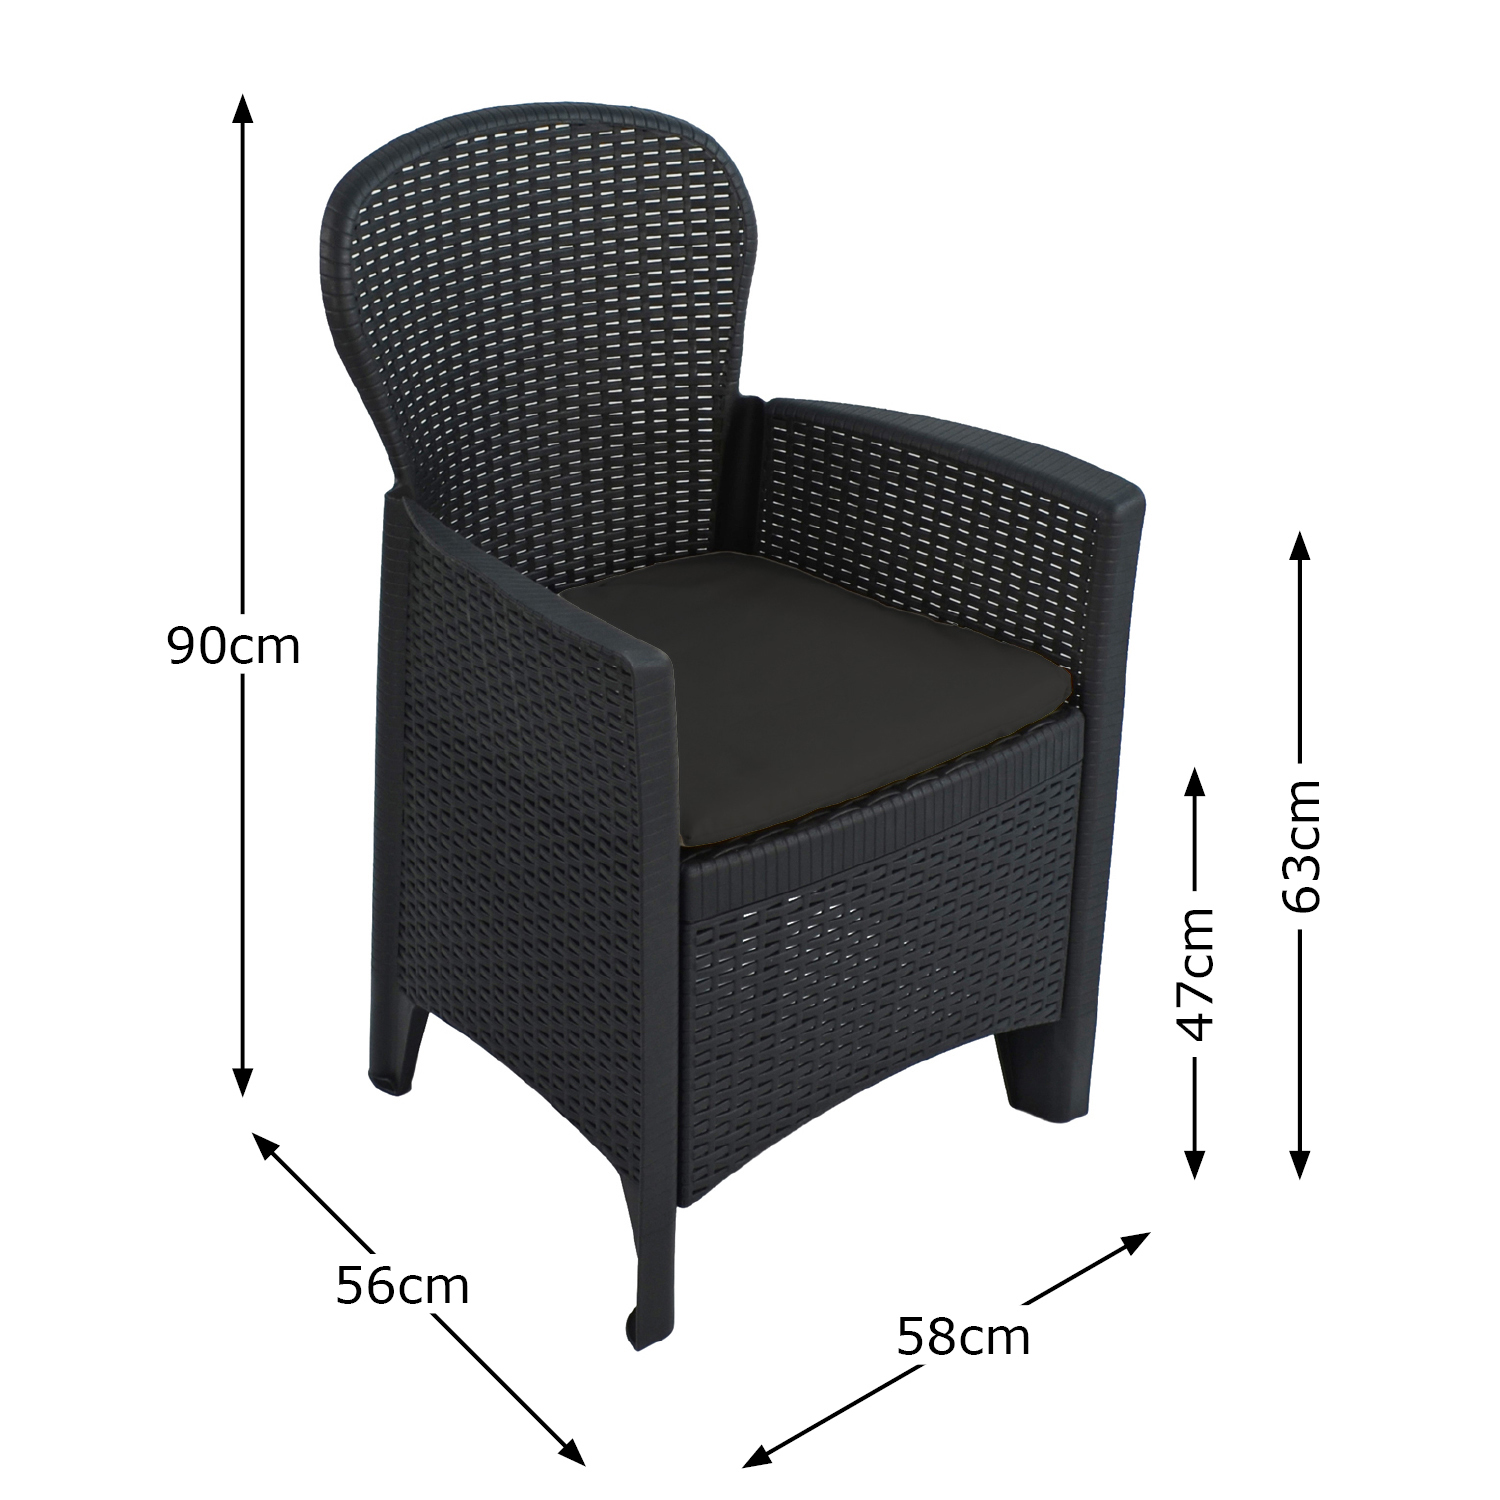 SICILY CHAIR ANTHRACITE DIMENSION MS1